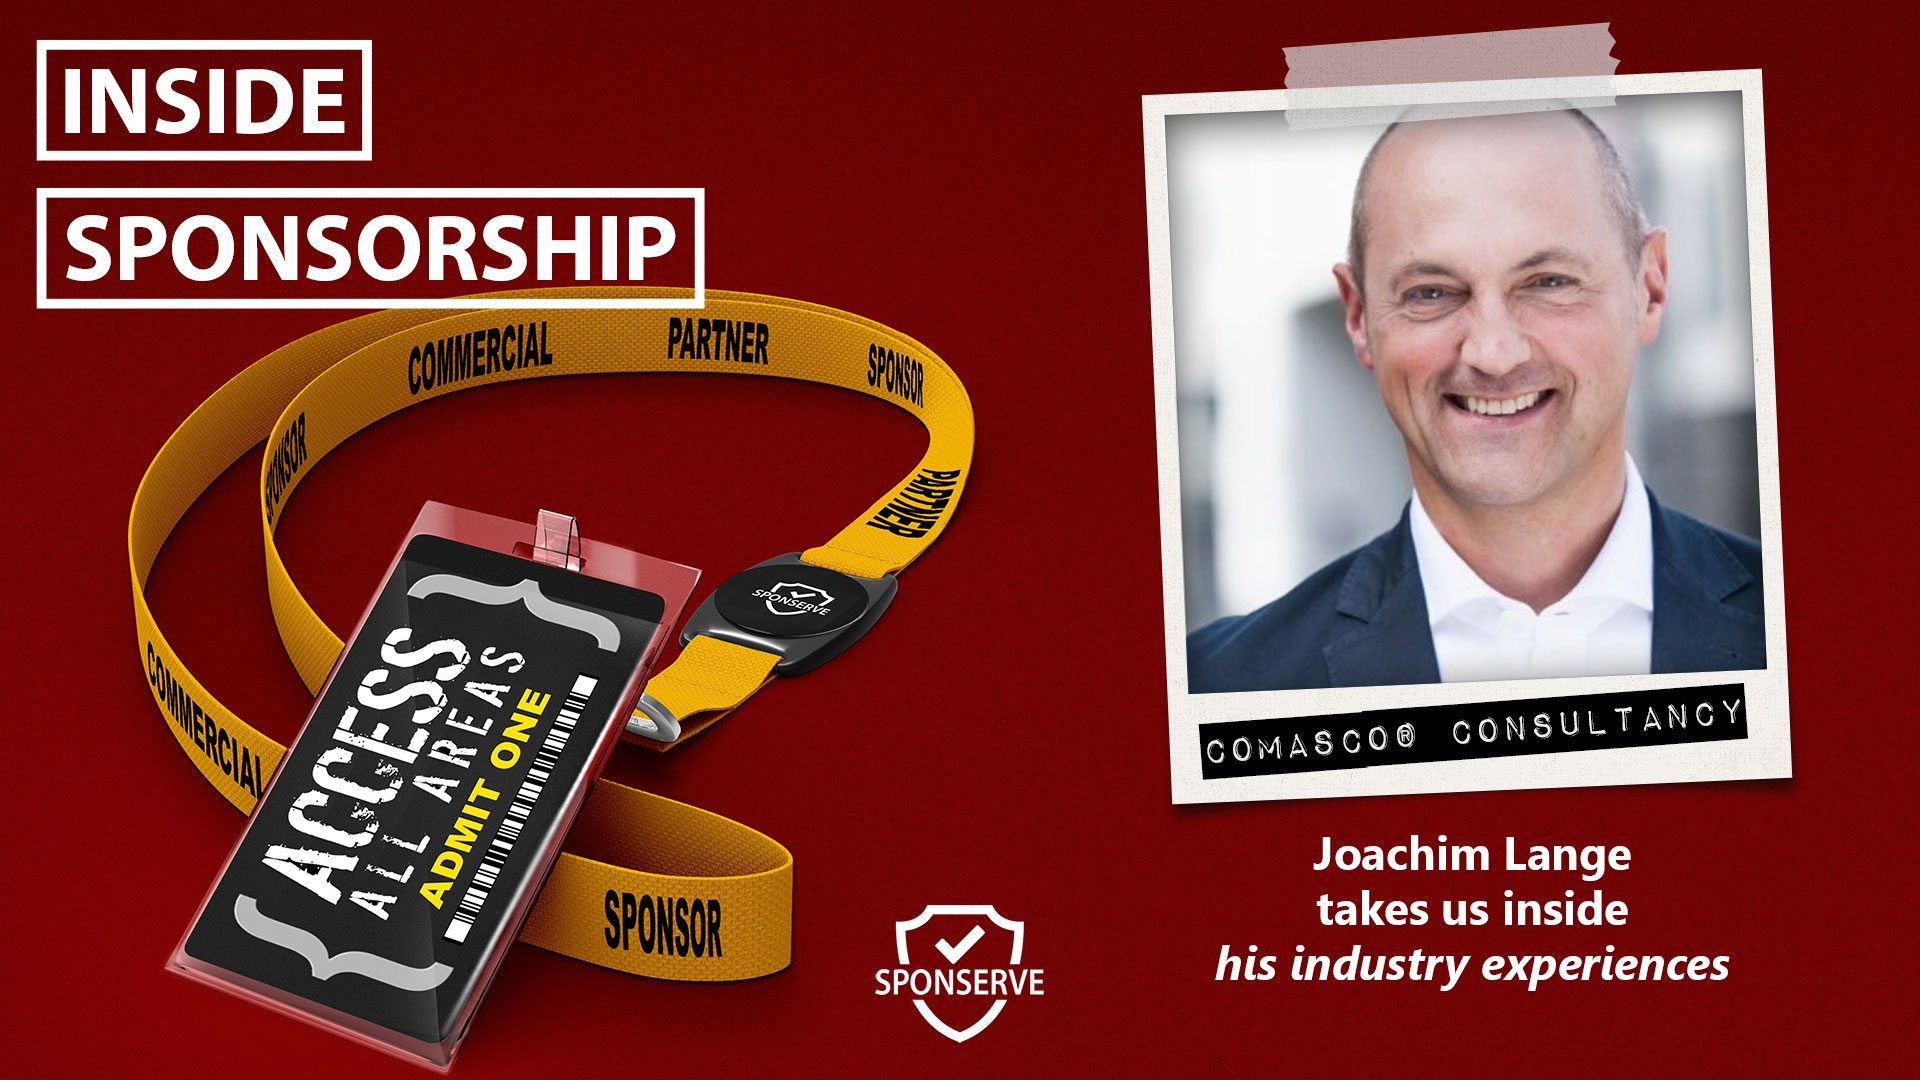 joachim lange inside sponsorship podcast